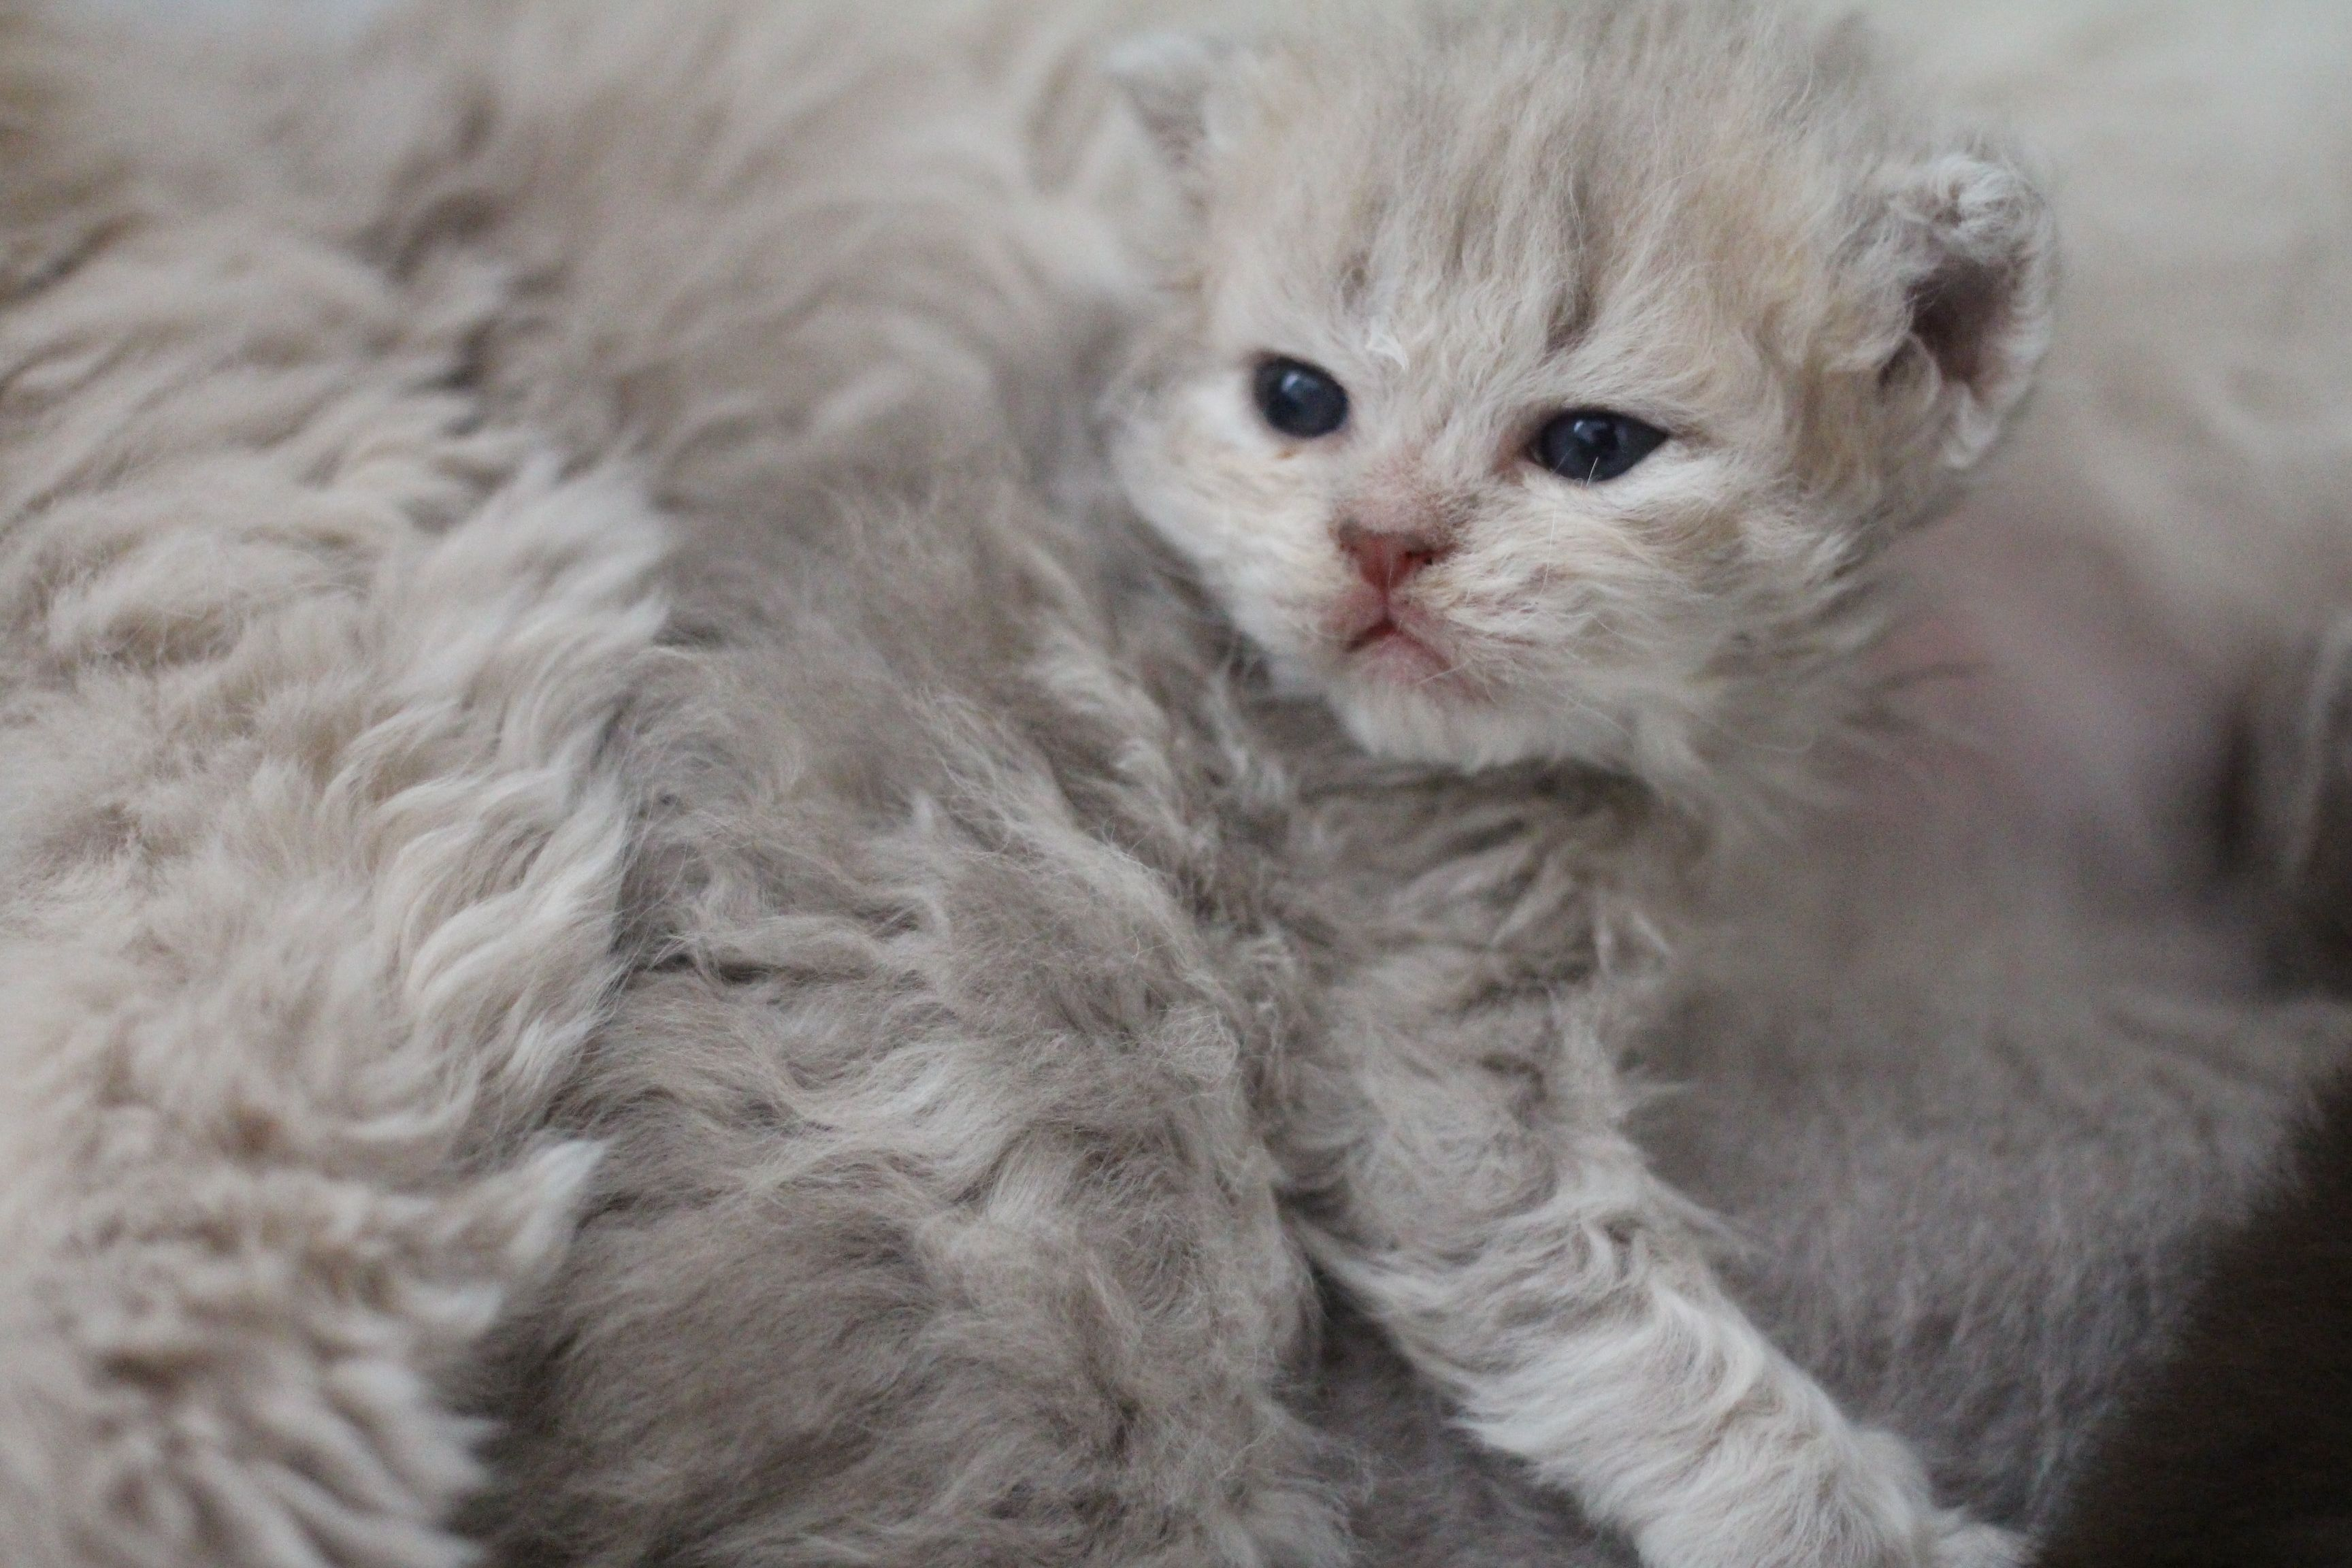 These Poodle Cats Are So Curly You Ll Squeal With Delight When You See Them Cats Curly Haired Cat Poodle